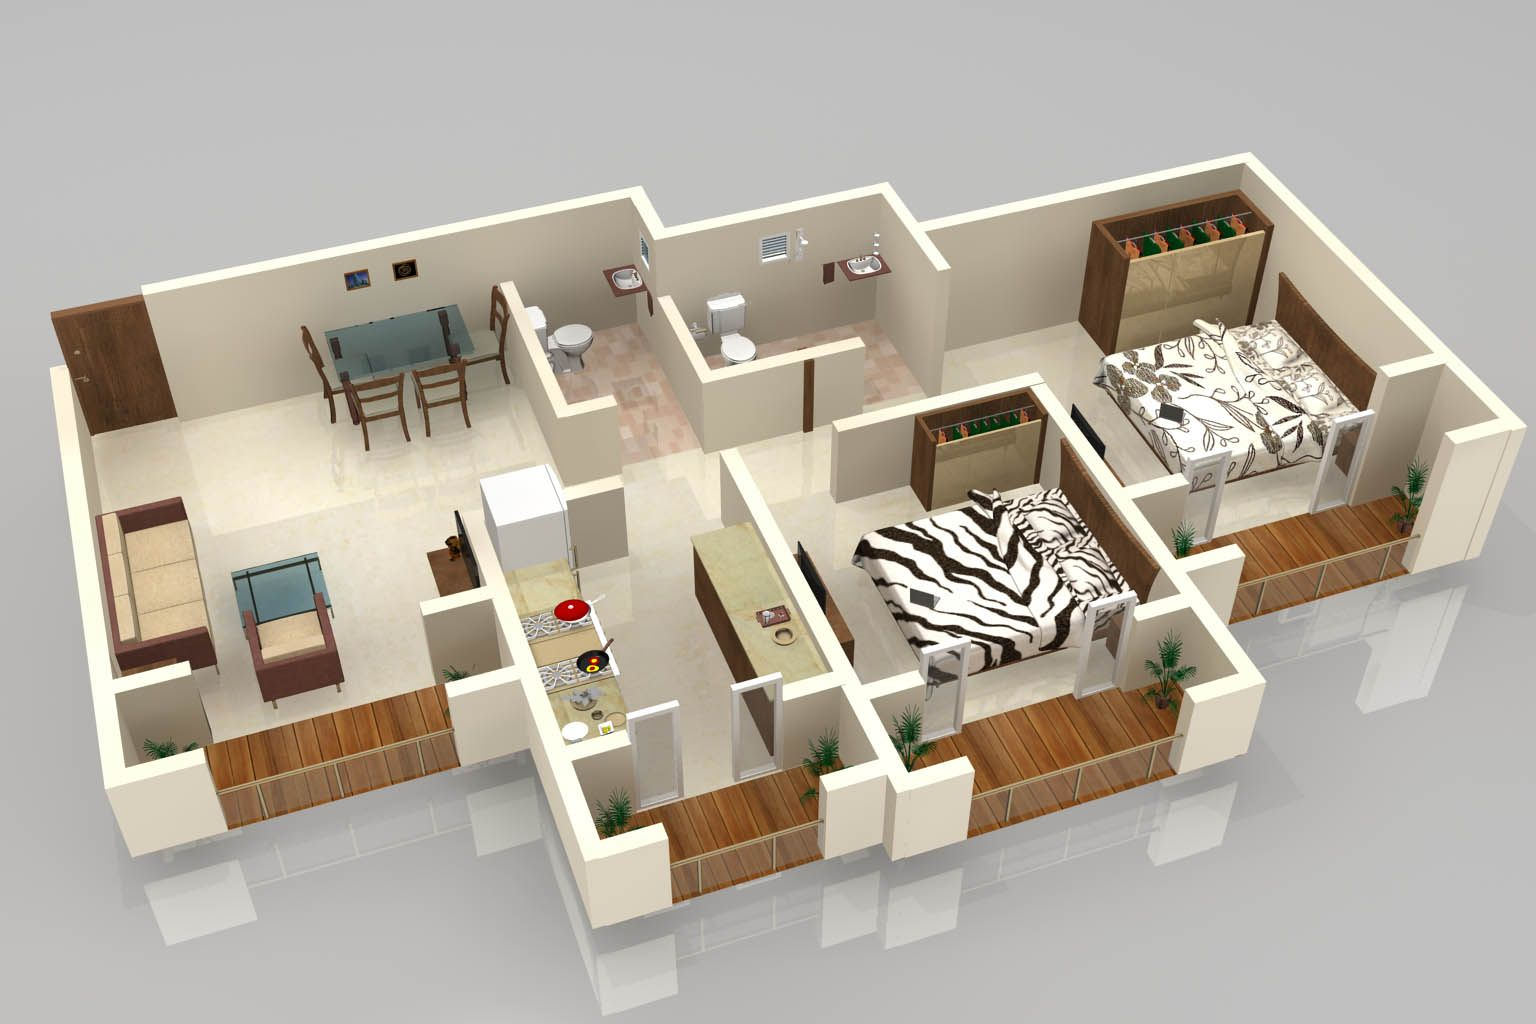 3d floor plan - Google keresés | 2 bedroom floor plans | Pinterest ...